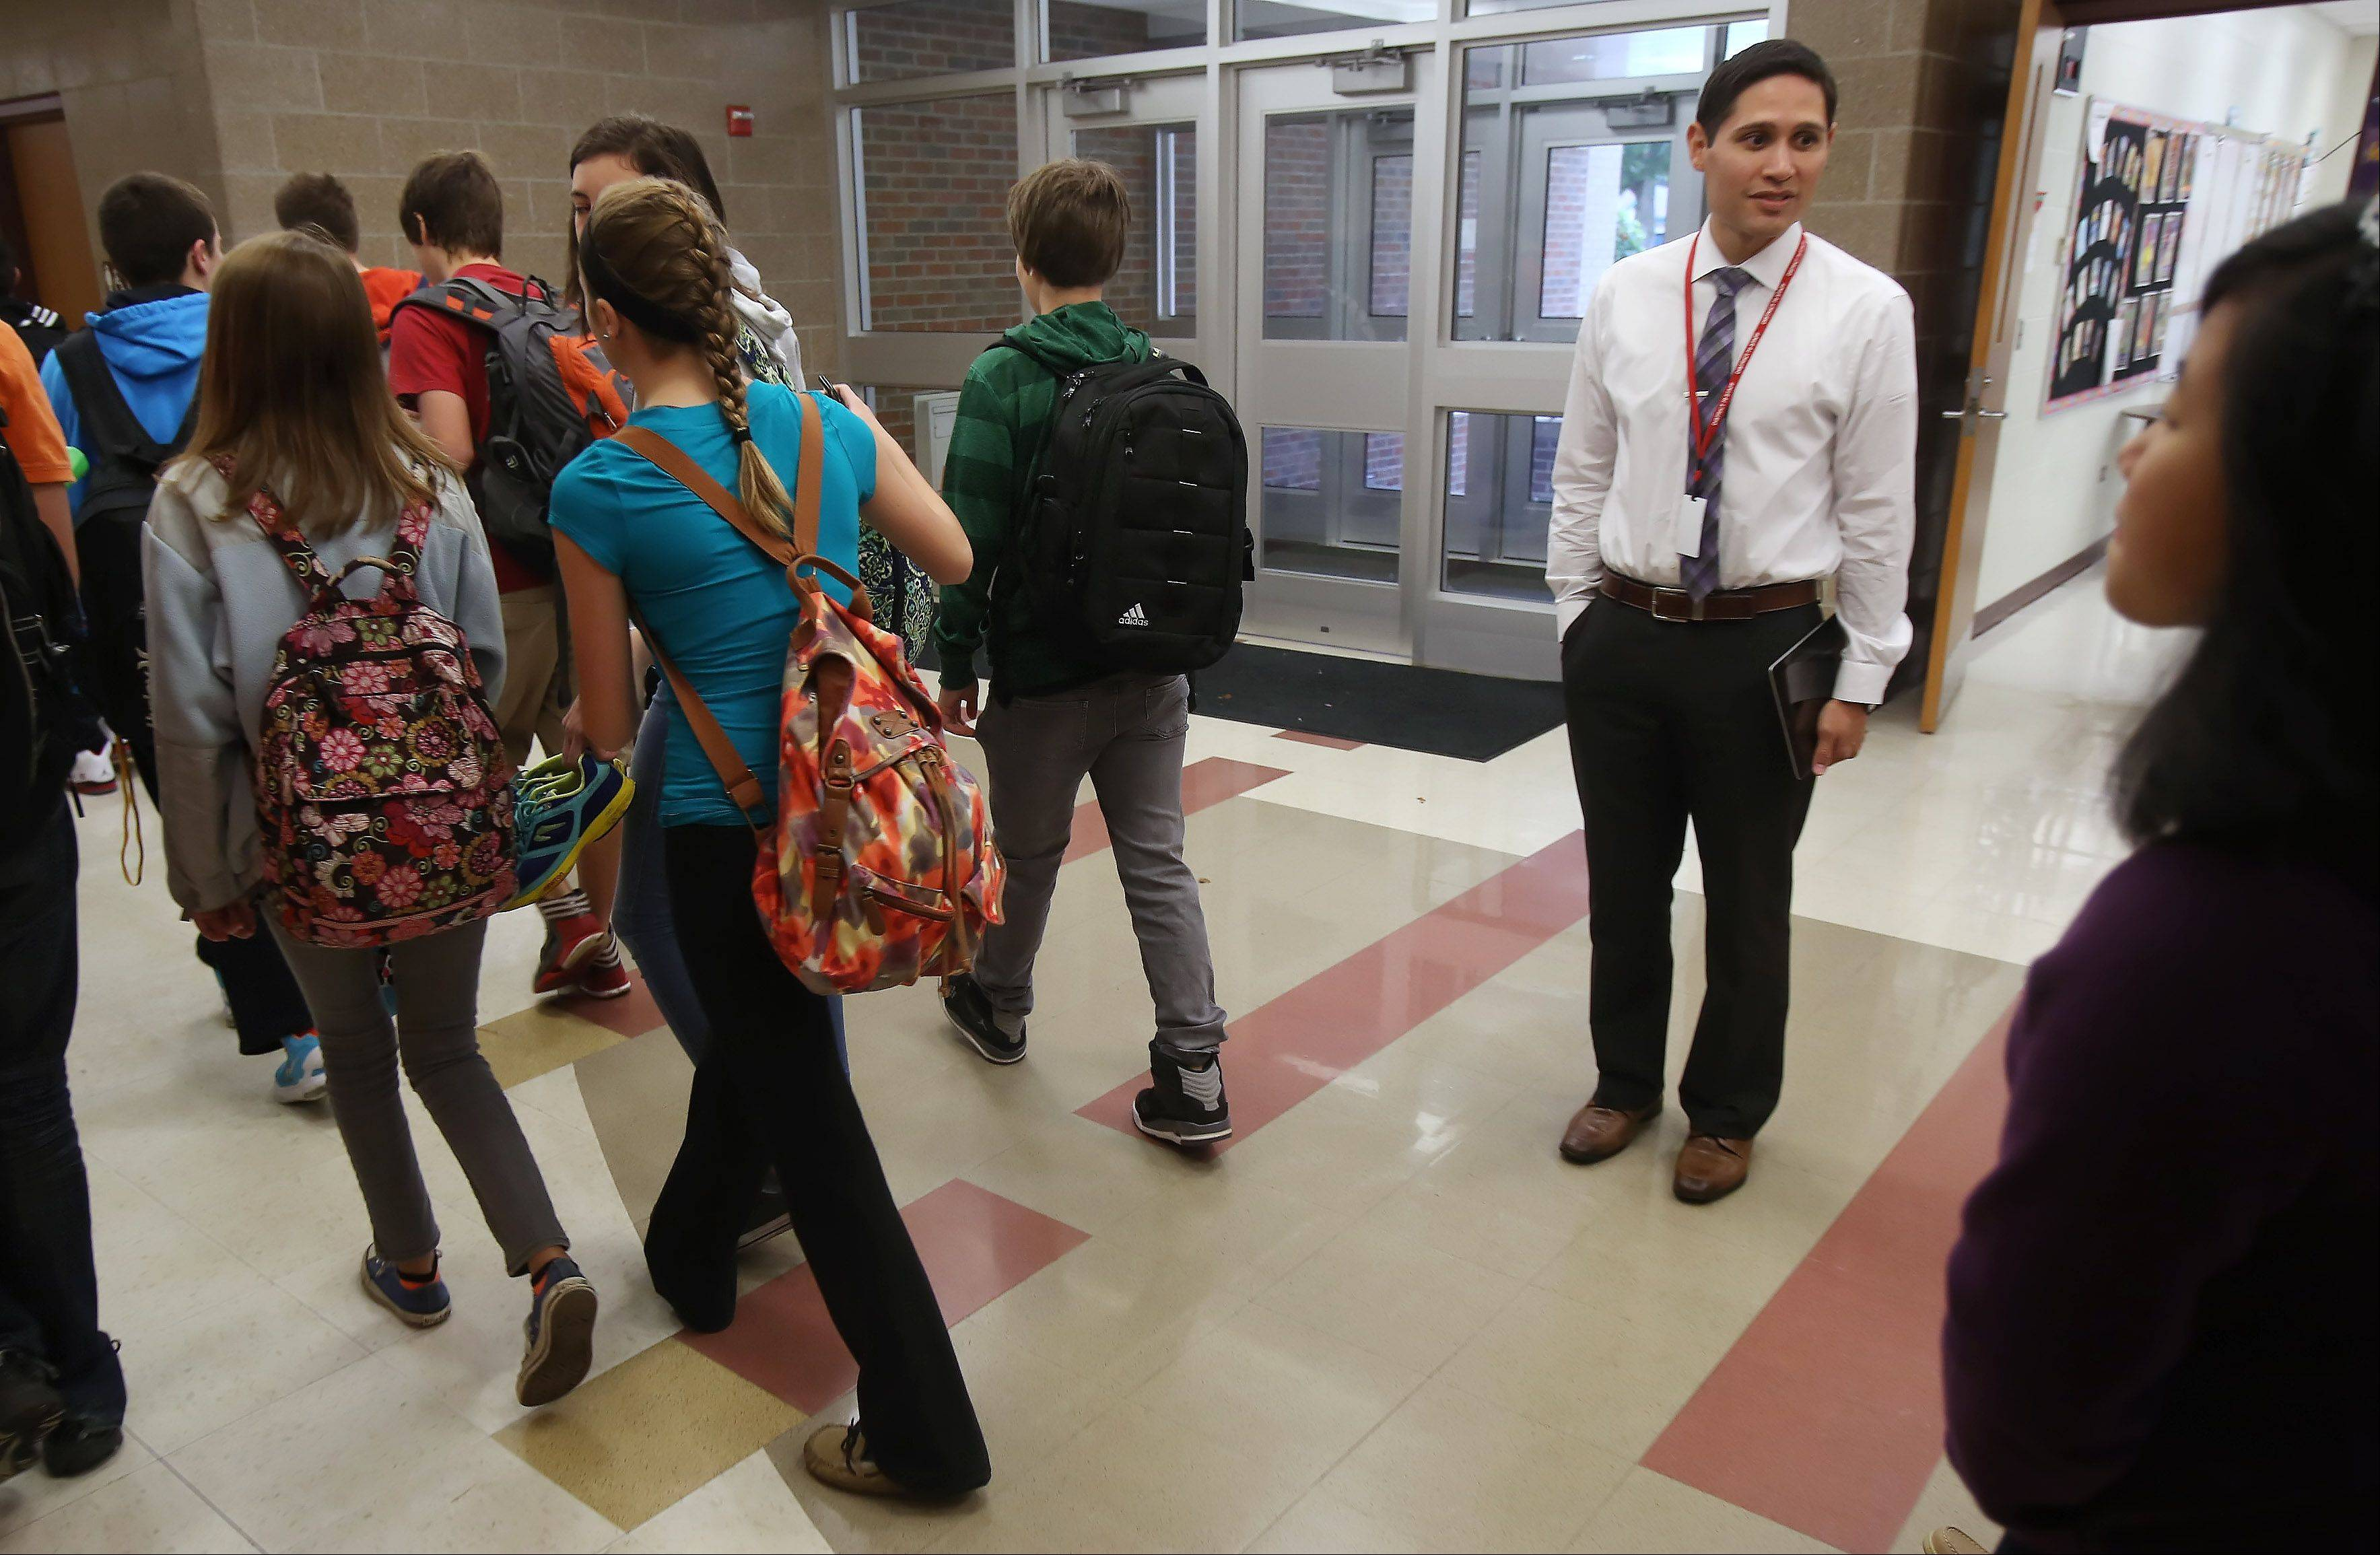 Highland Middle School Assistant Principal Lorenzo Cervantes talks to students as they switch classes. Cervantes has been involved with the new online bullying forms at the Libertyville school. Online forms allow students and parents report bullying to school officials and have helped Lake County school districts deal with a problem that has been in the national spotlight.